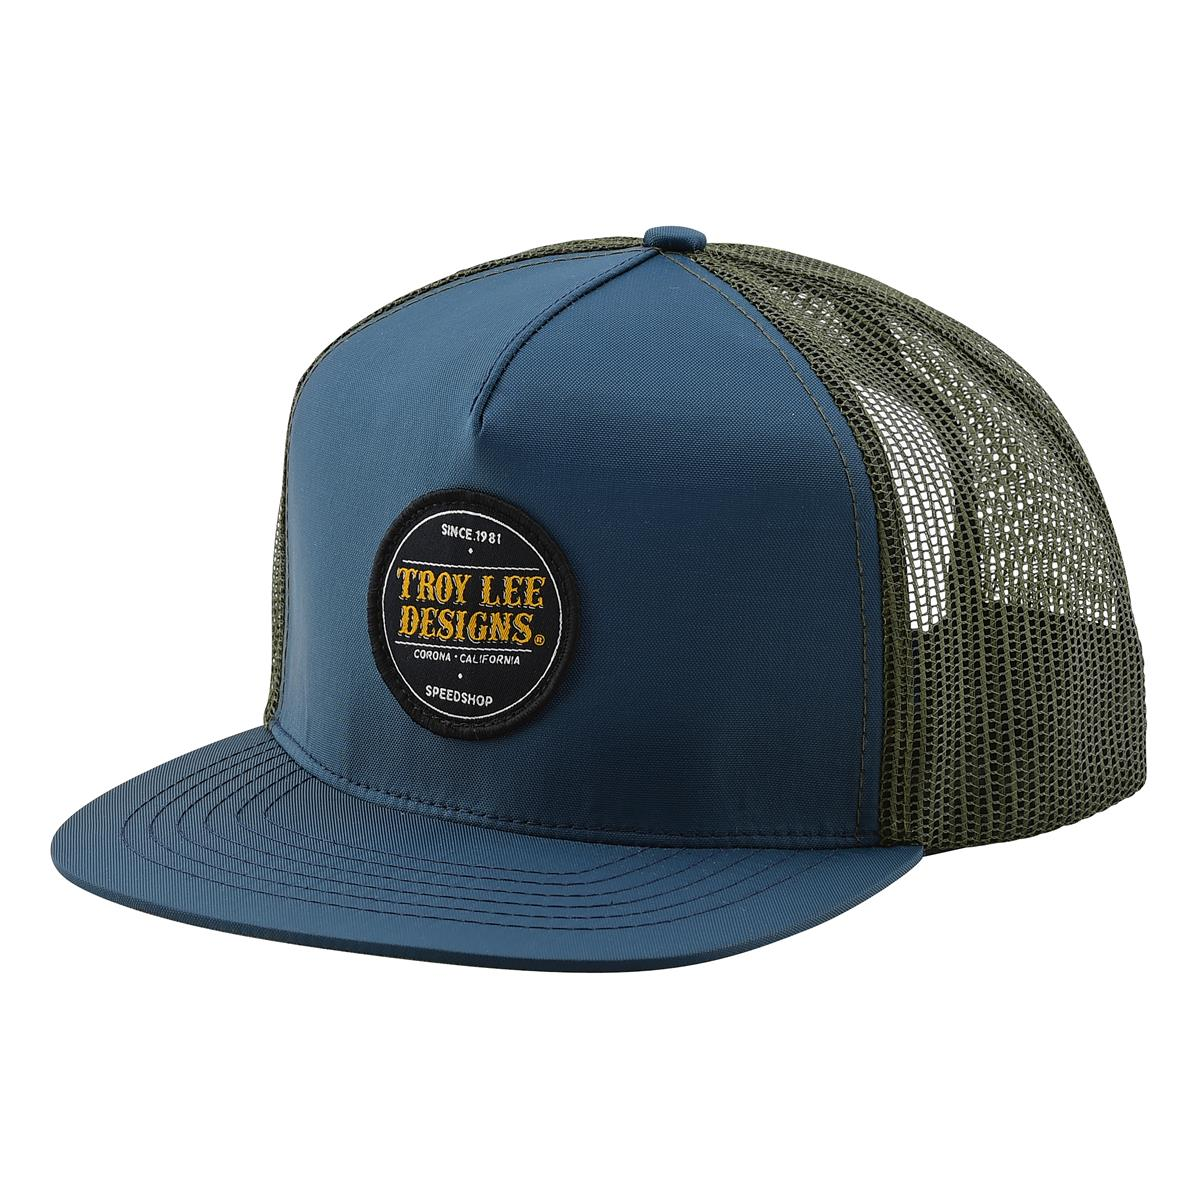 Troy Lee Designs Snapback Cap Beer Head Navy